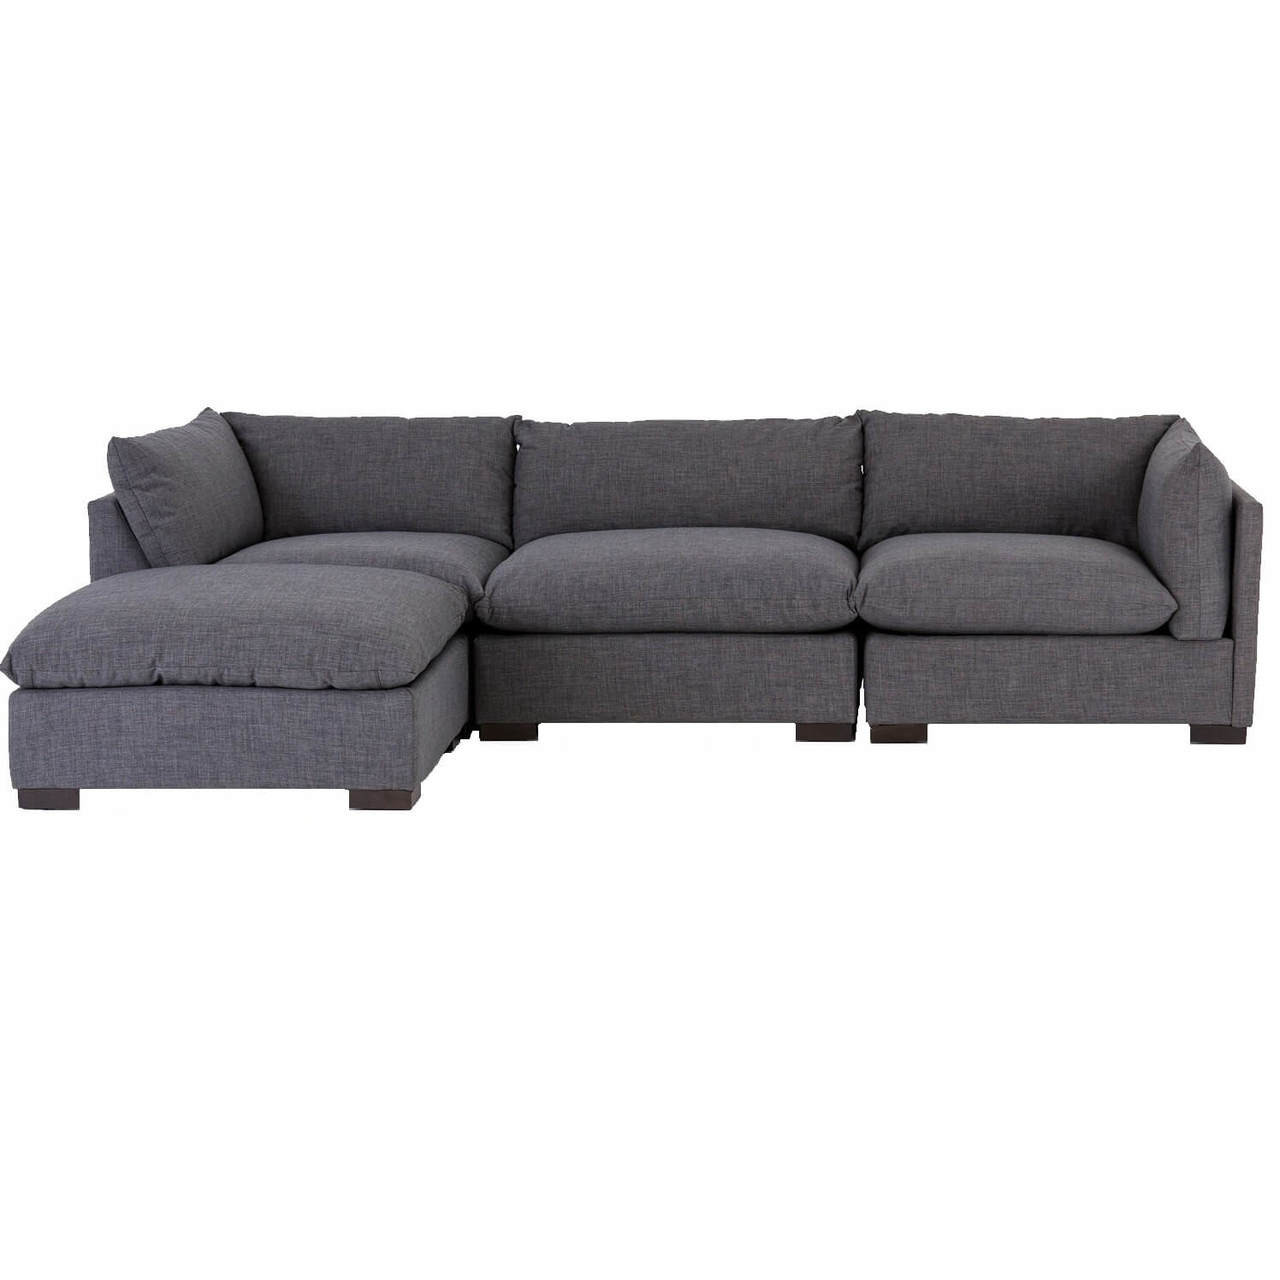 sofa with ashley cuddler modern reversible right products piece seat furniture by design sectional